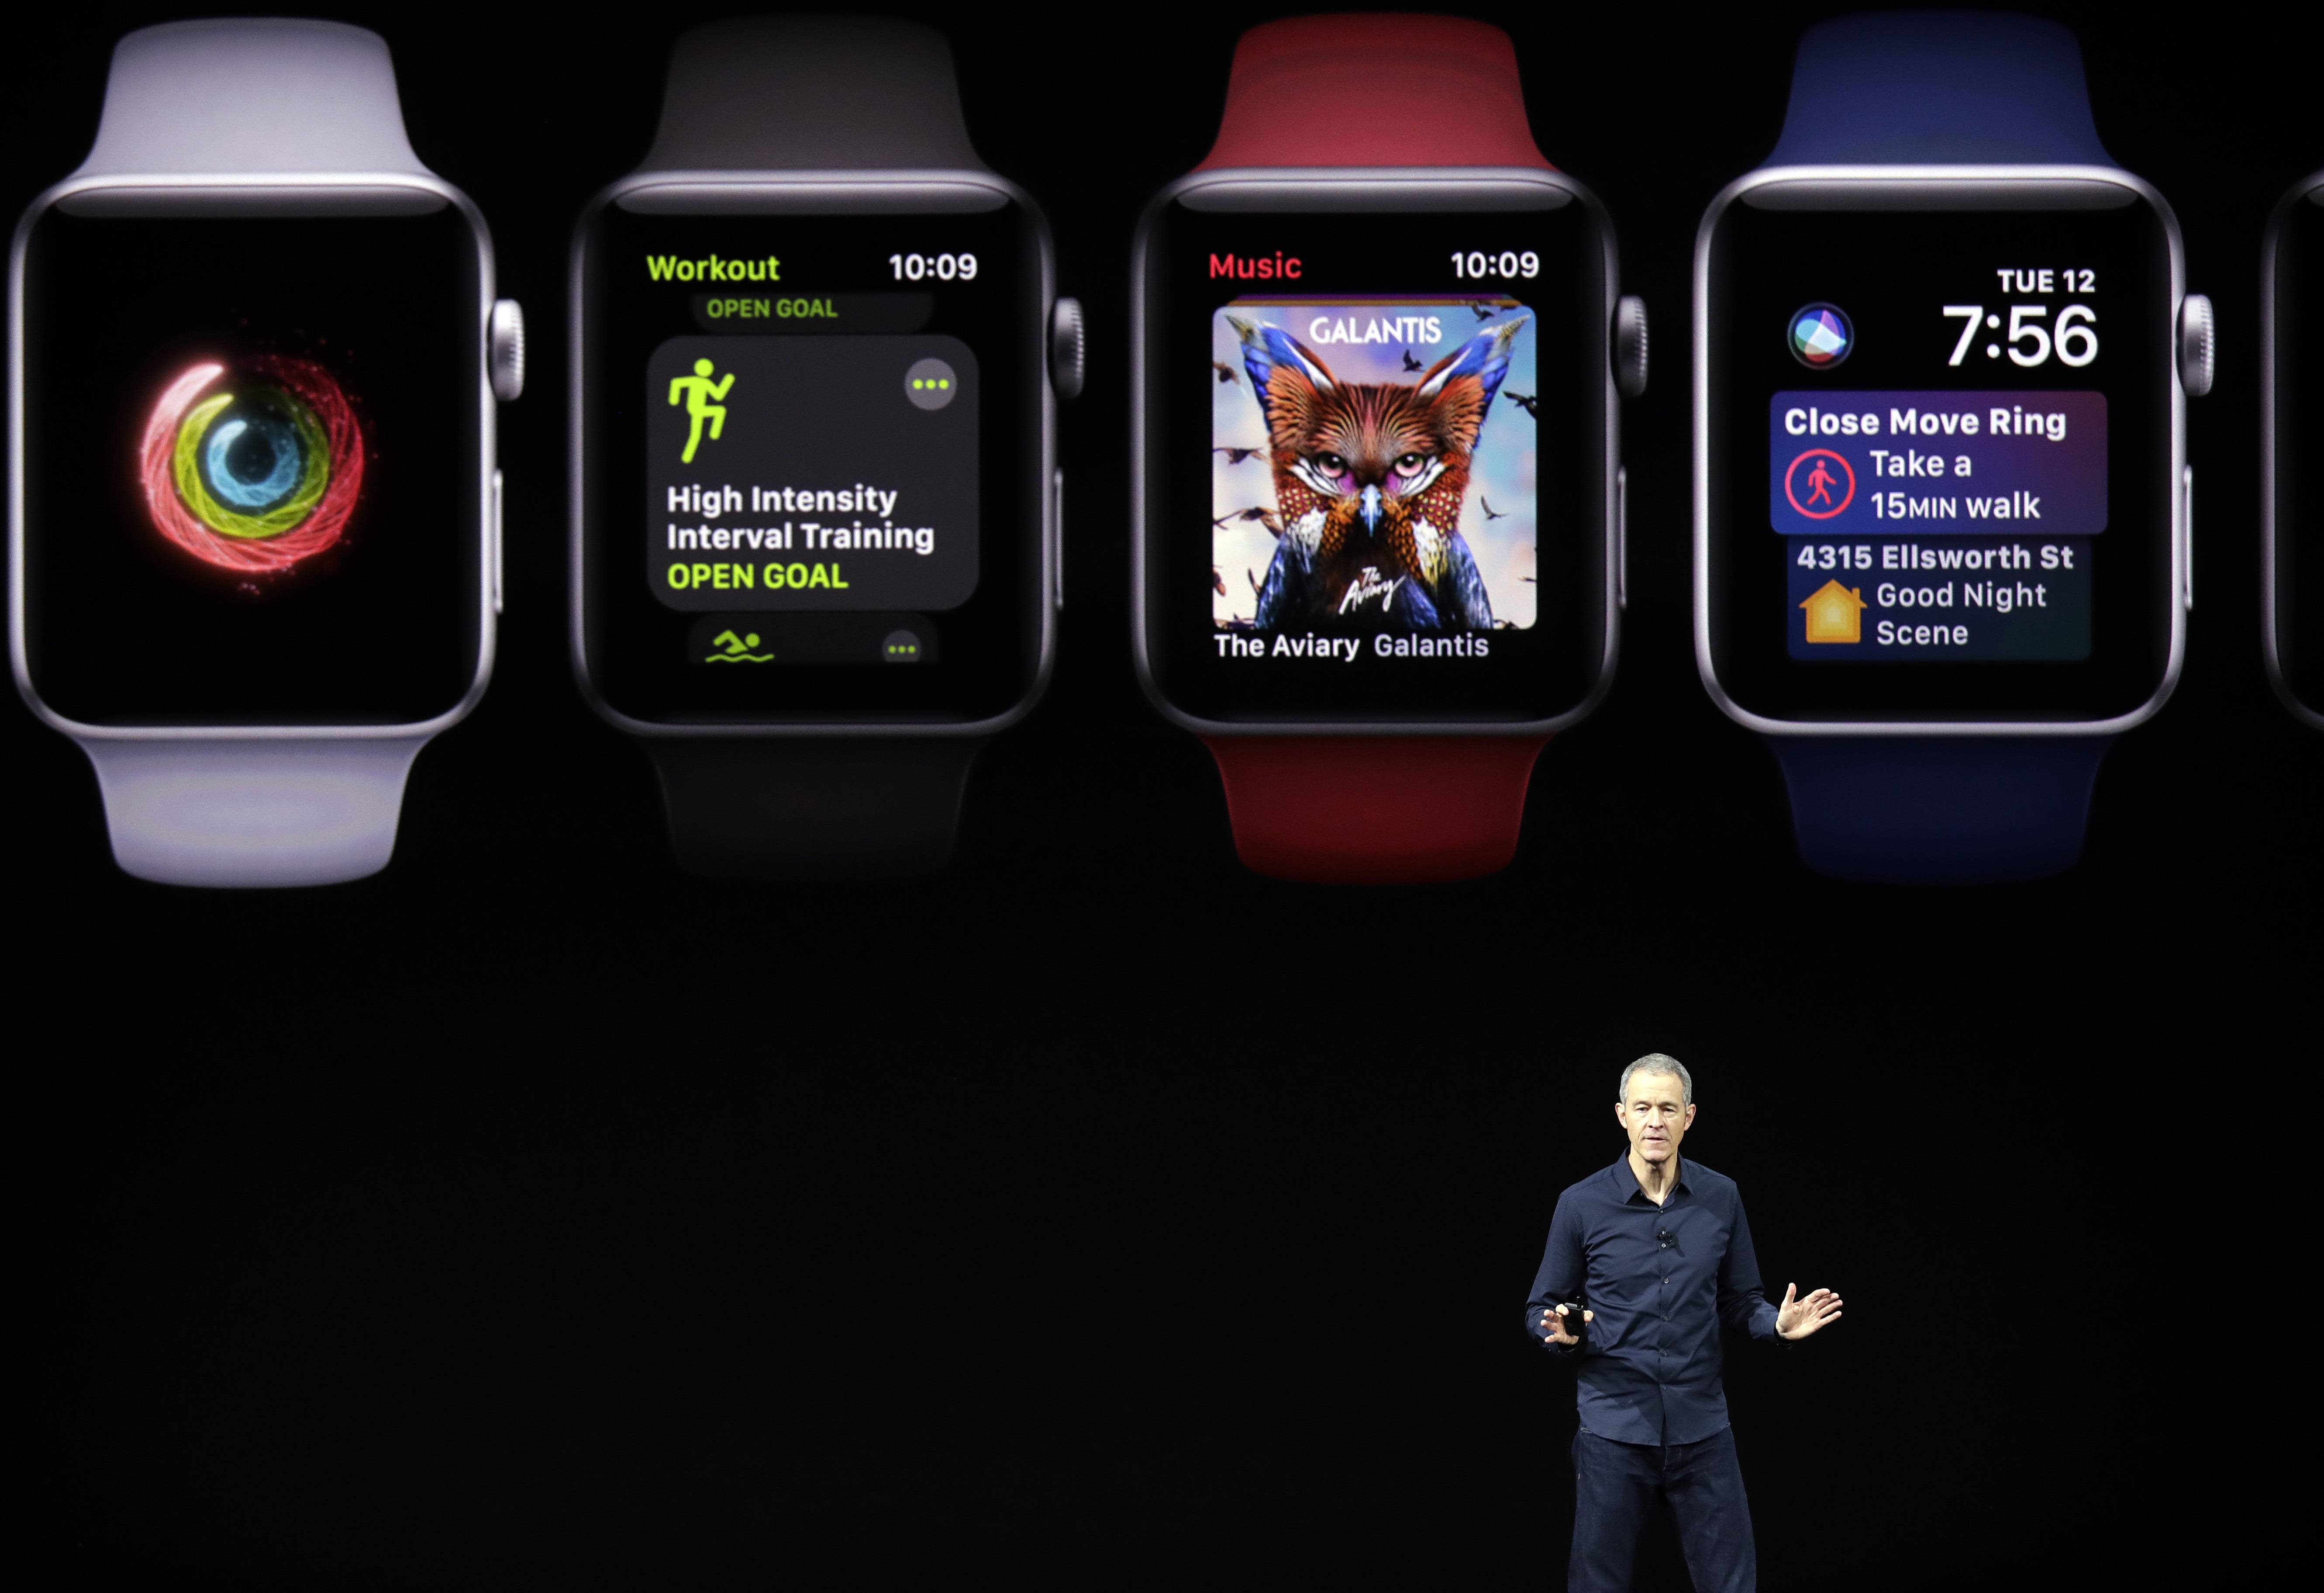 Apple Watch users are now able to enroll in a new study Apple is conducting with Stanford University School of Medicine, which uses the device's heart-rate monitor to check for an irregular heart rate.